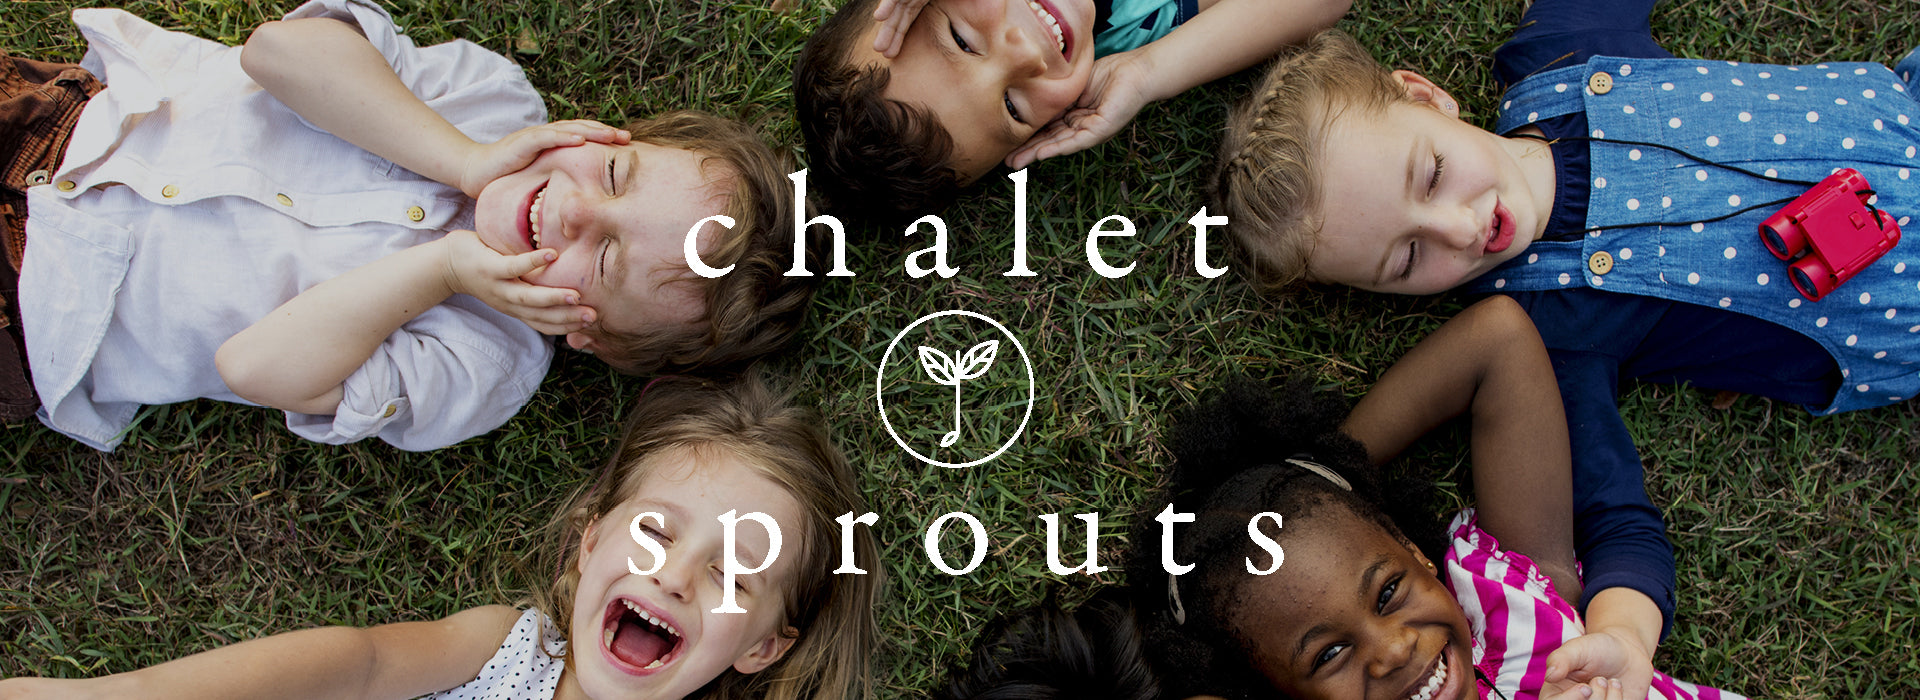 chalet sprouts program